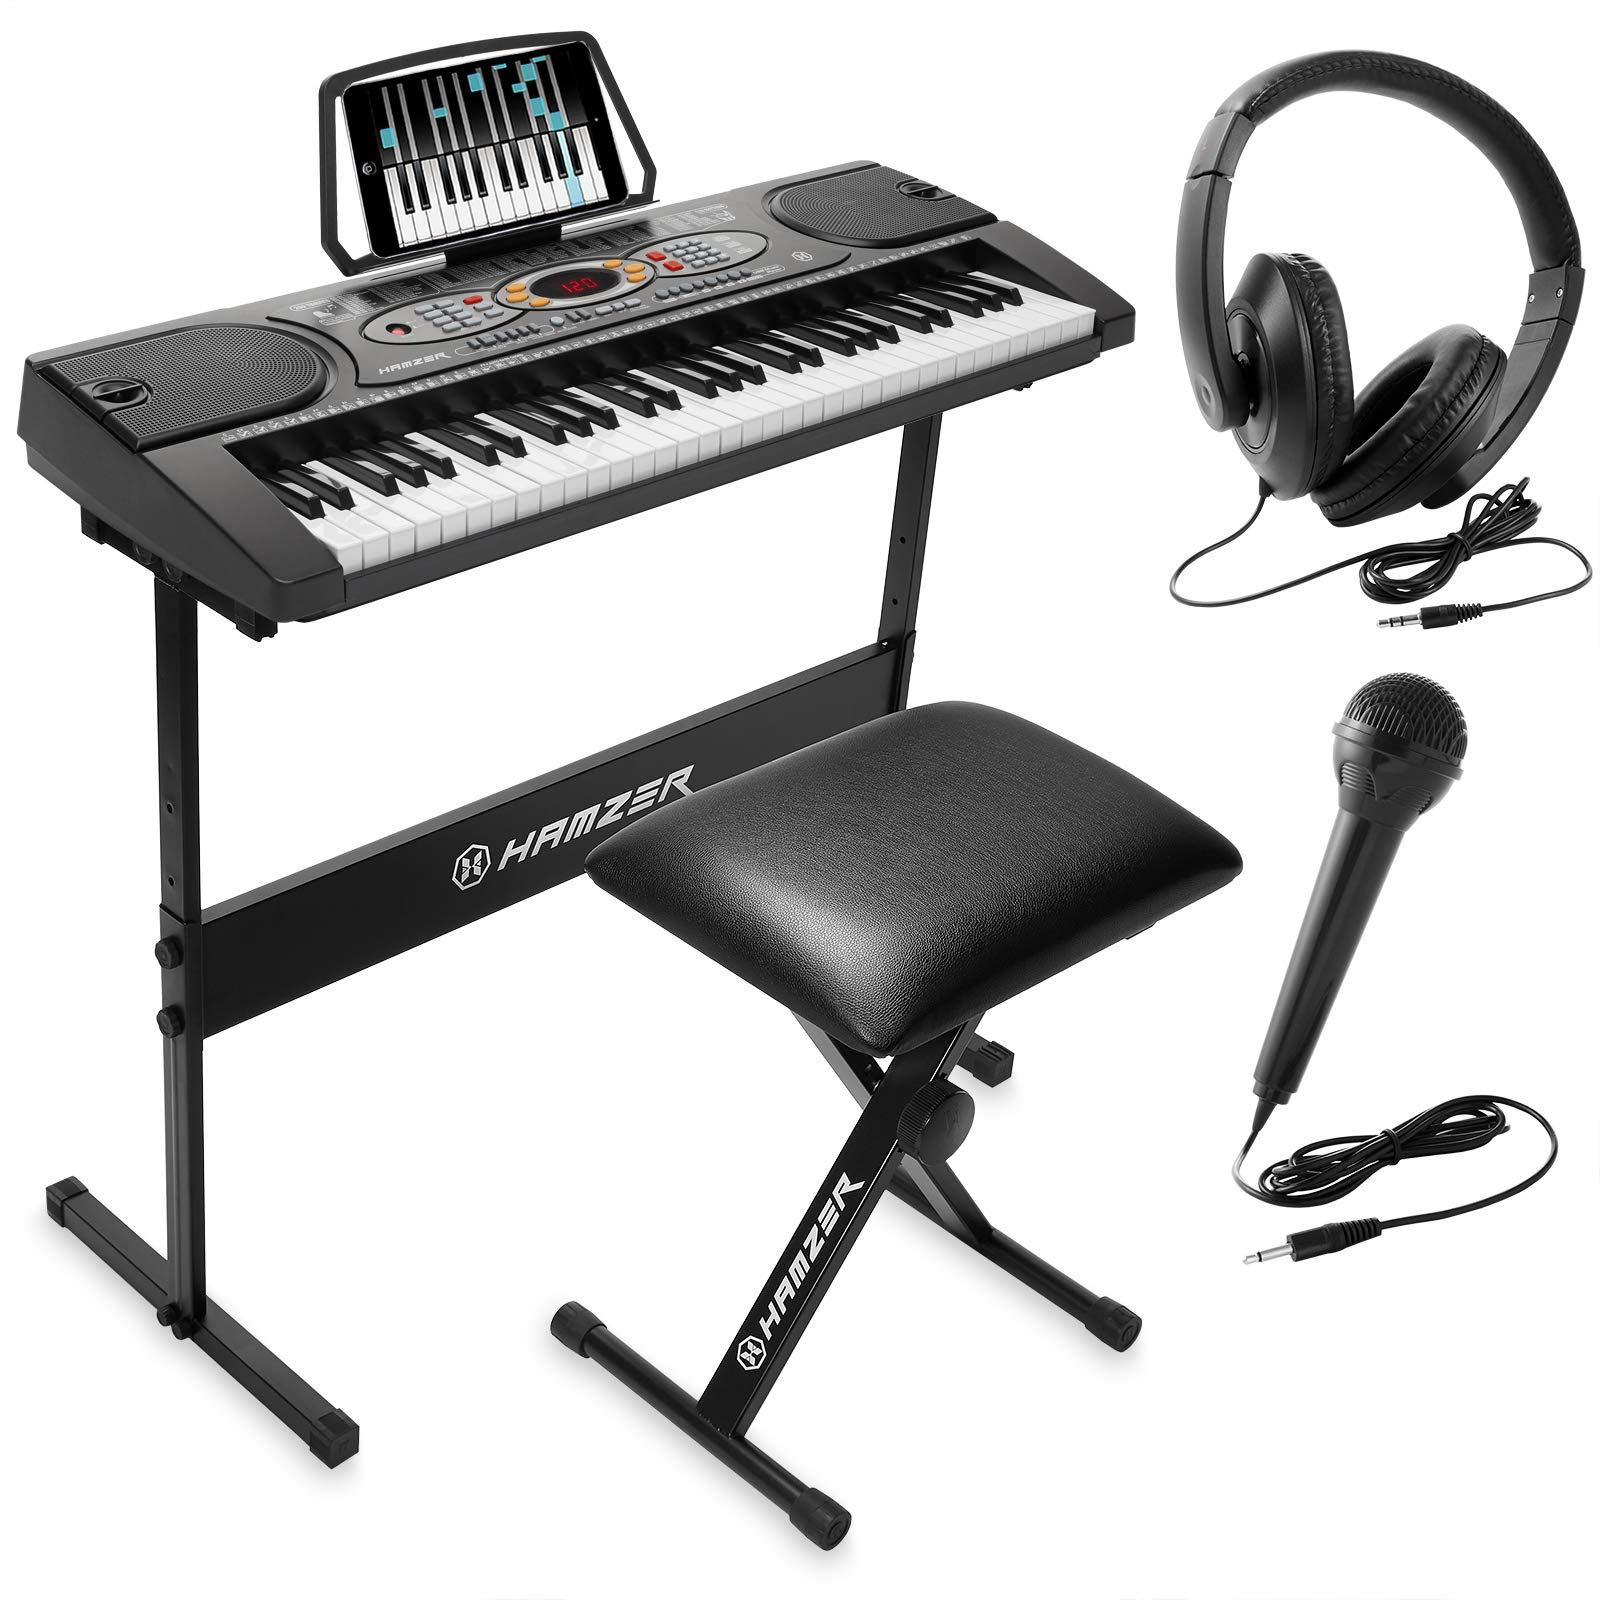 Hamzer 61-Key Electronic Keyboard Portable Digital Music Piano with H Stand, Stool, Headphones Microphone, Sticker Set by Hamzer (Image #1)